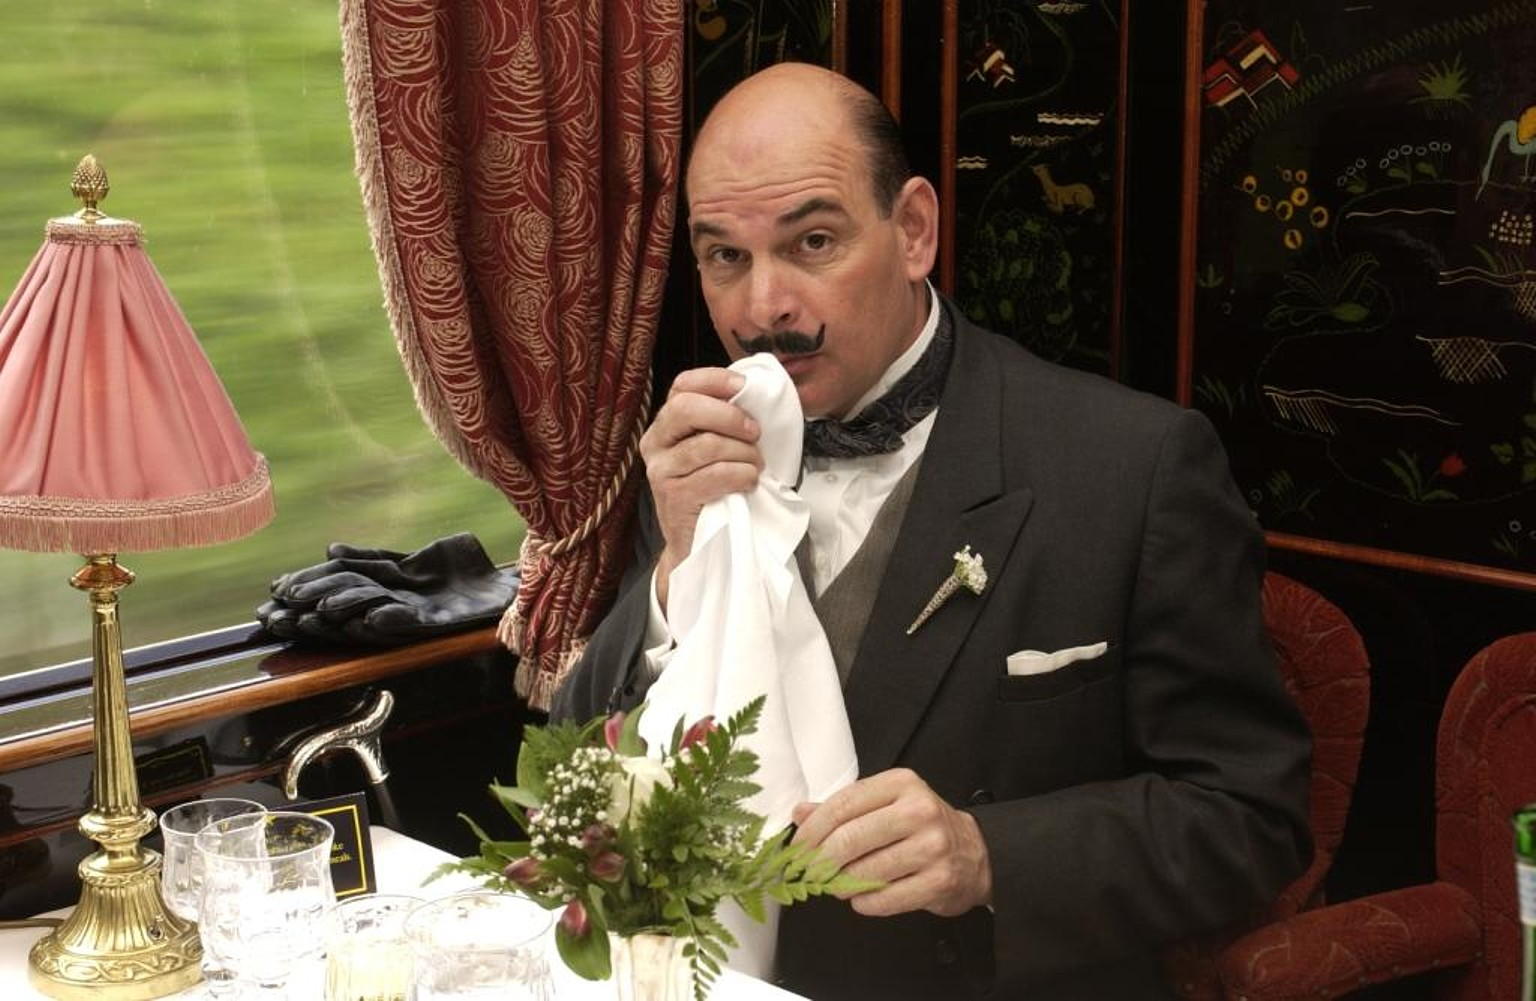 Poirot_Look_alike_for_hire